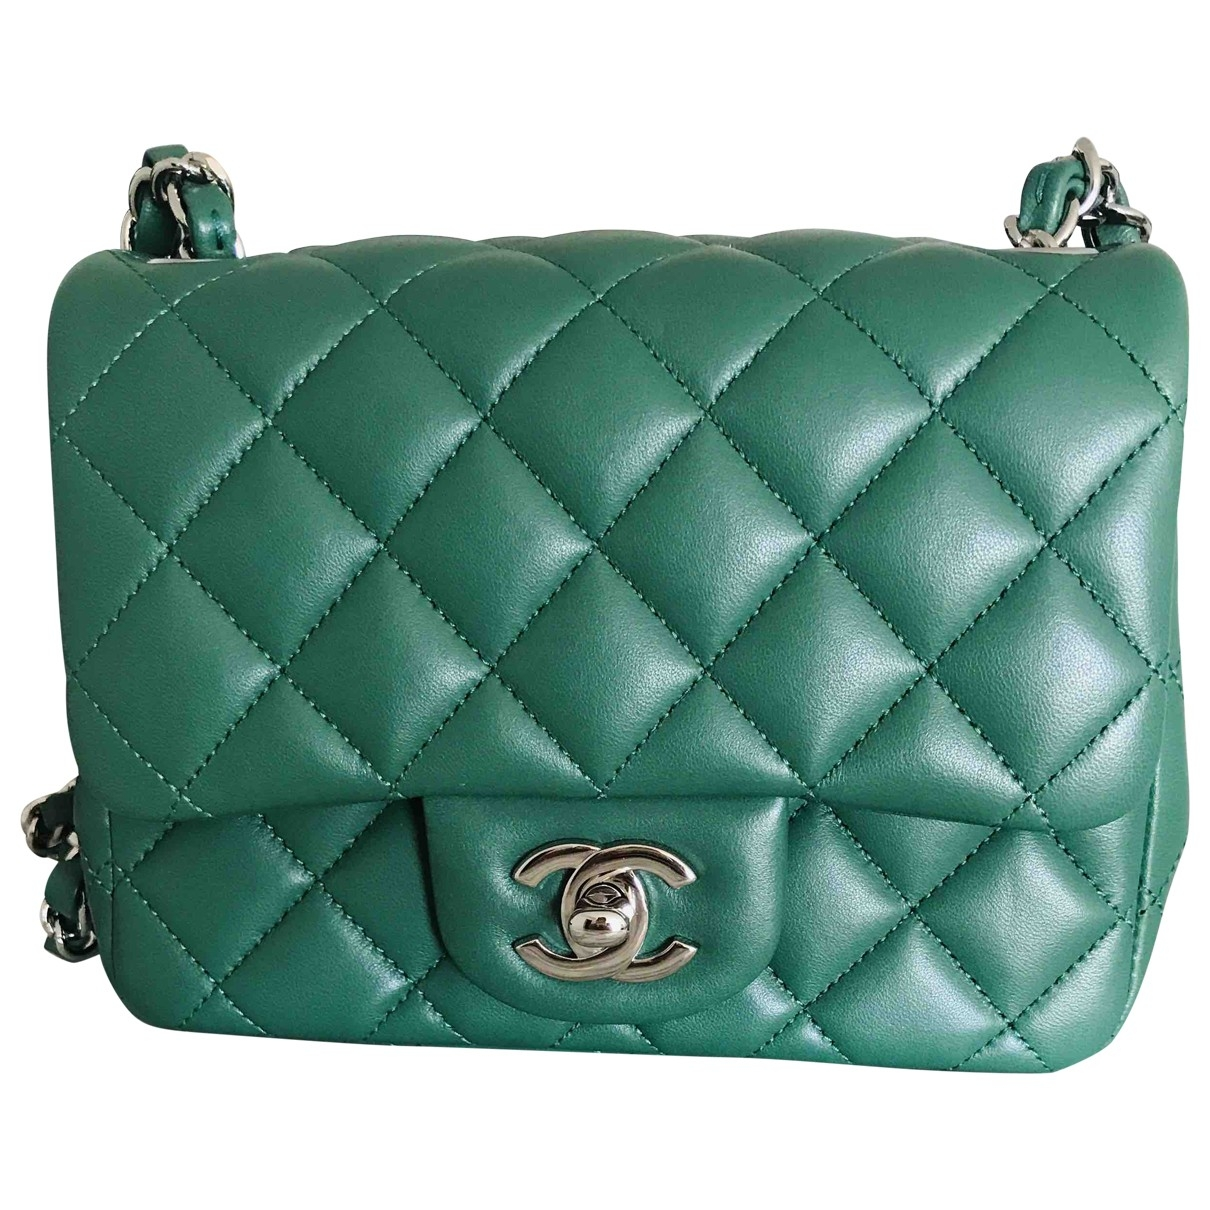 Chanel Timeless/Classique Green Leather handbag for Women \N